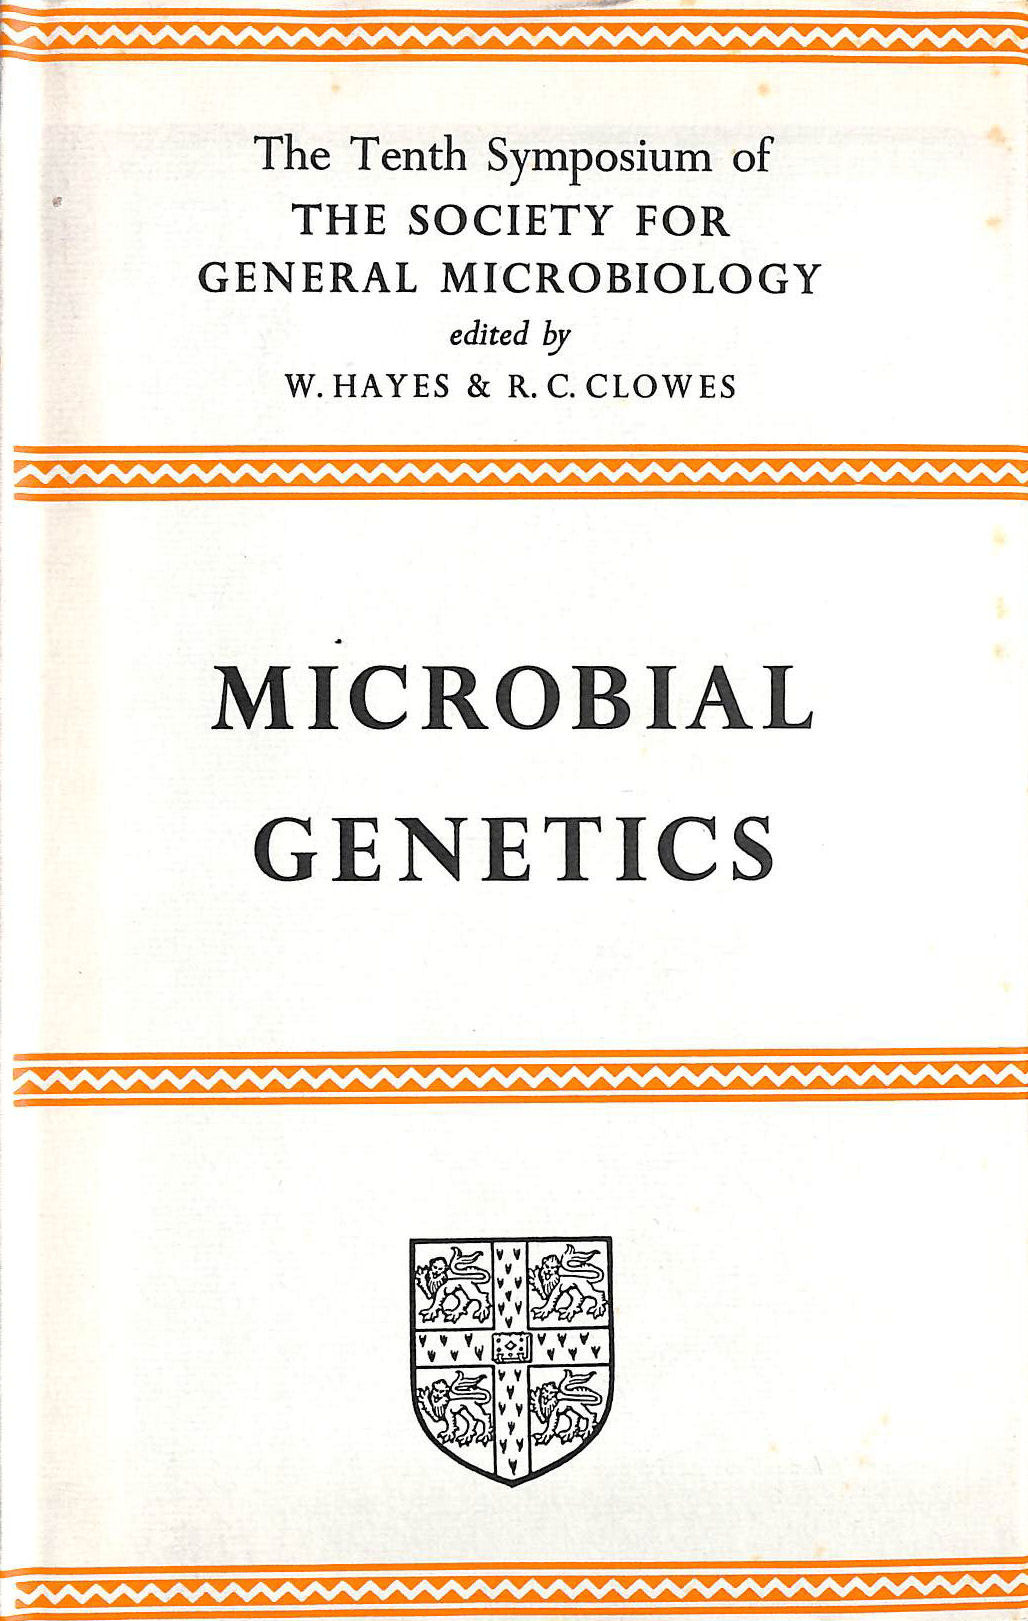 Image for Microbial genetics: Tenth Symposium of the Society for General Microbiology held at the Royal Institution, London, April 1960